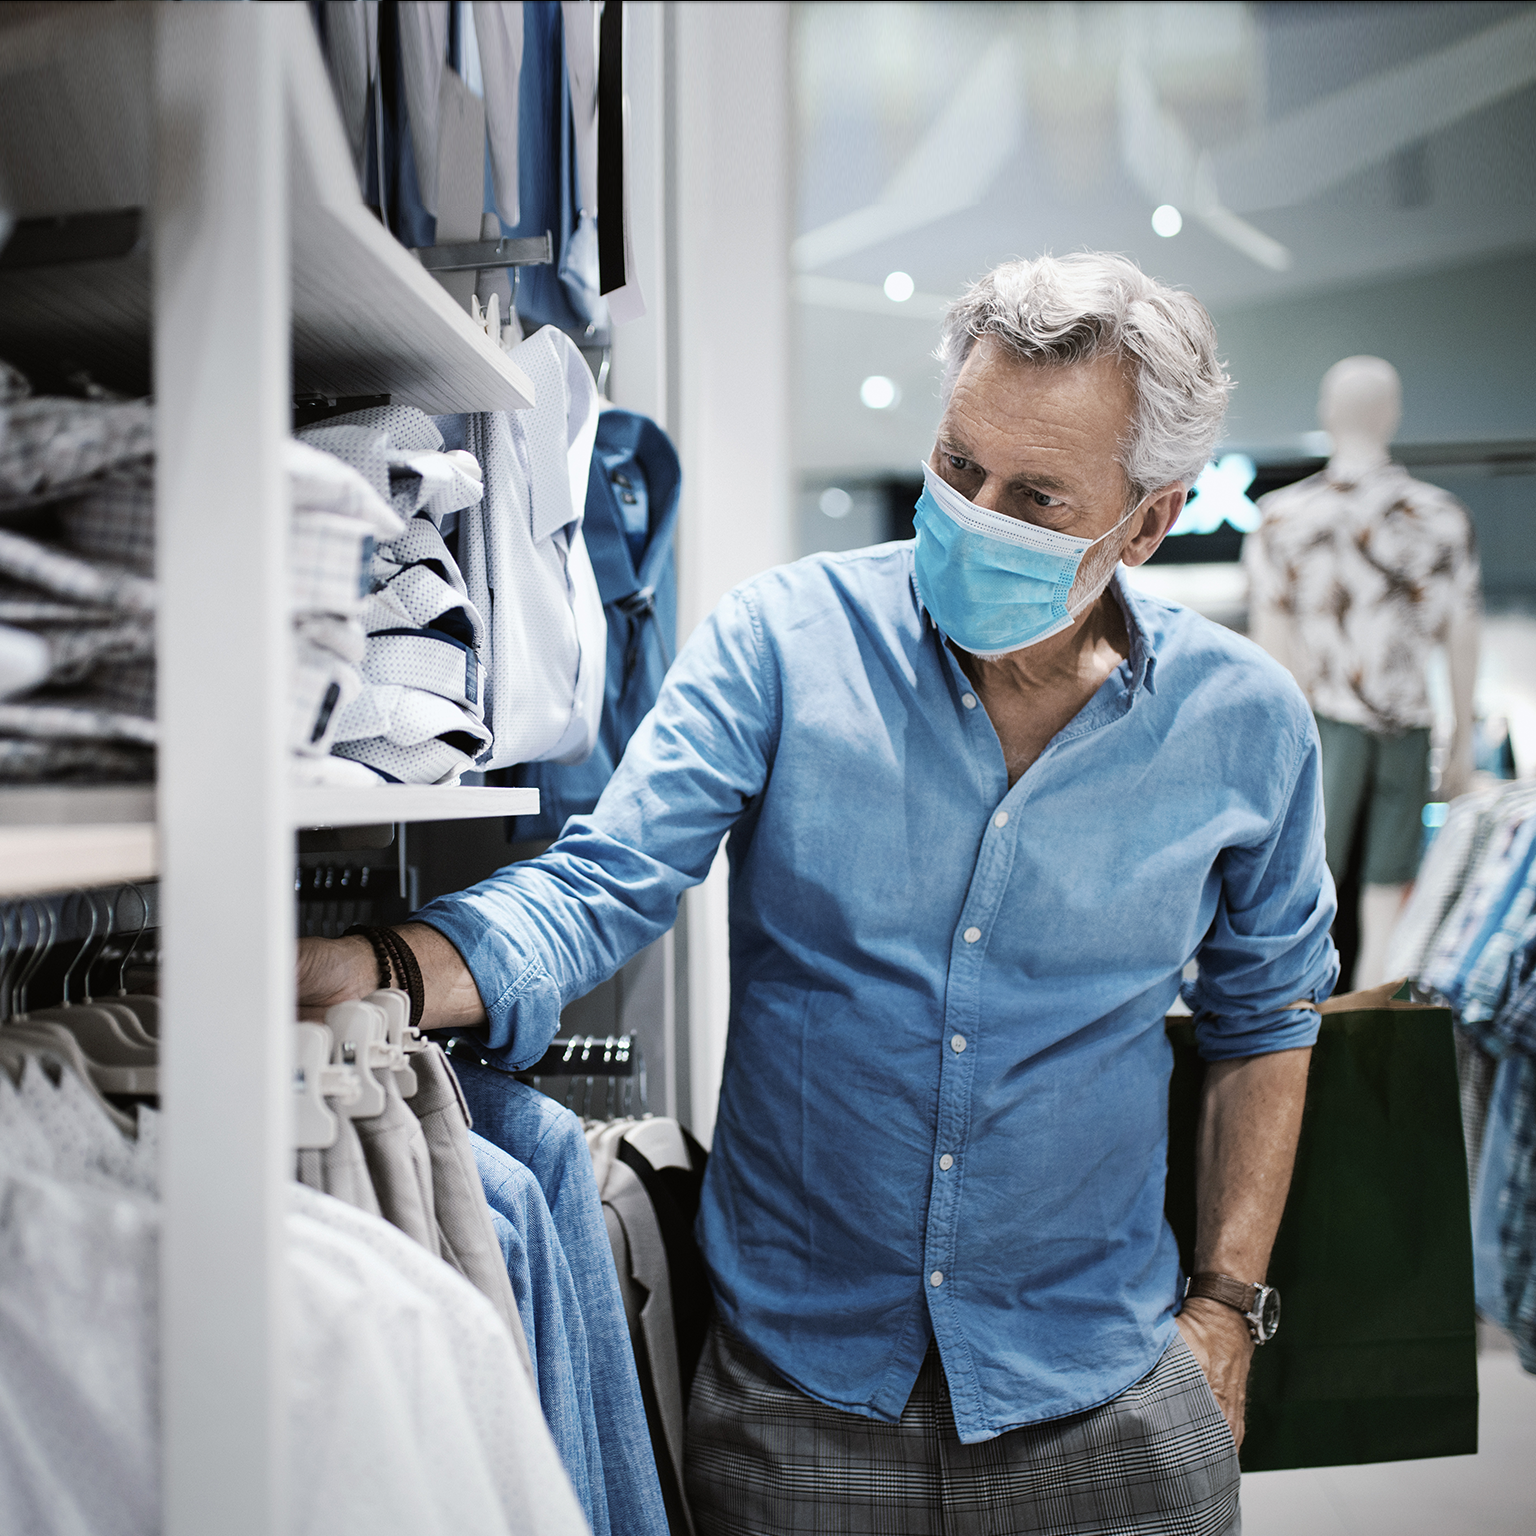 how-retail-can-adapt-supply-chains-to-win-in-the-next-normal